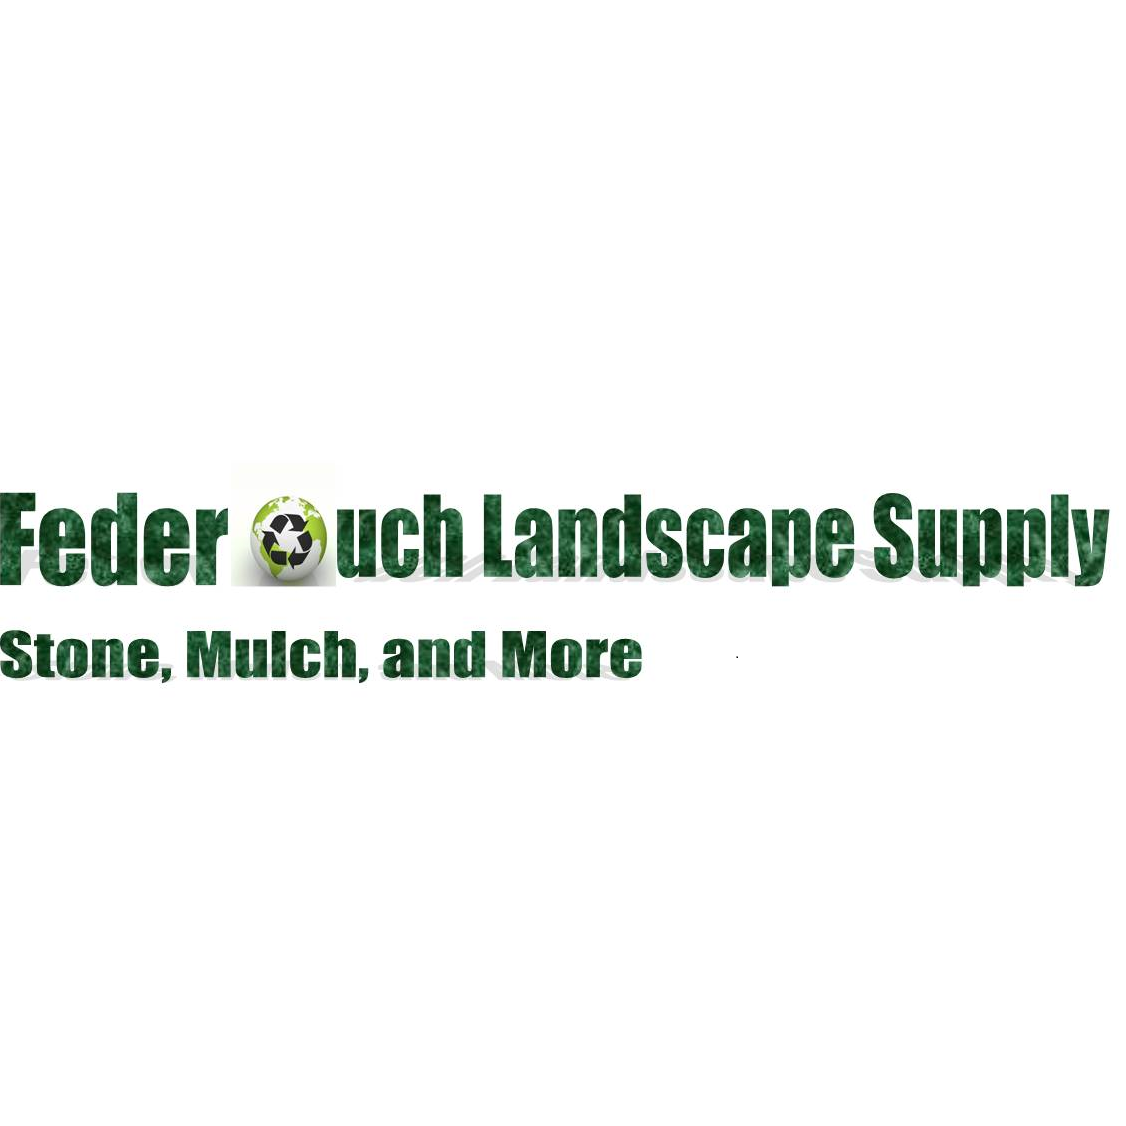 Federouch Landscape Supply